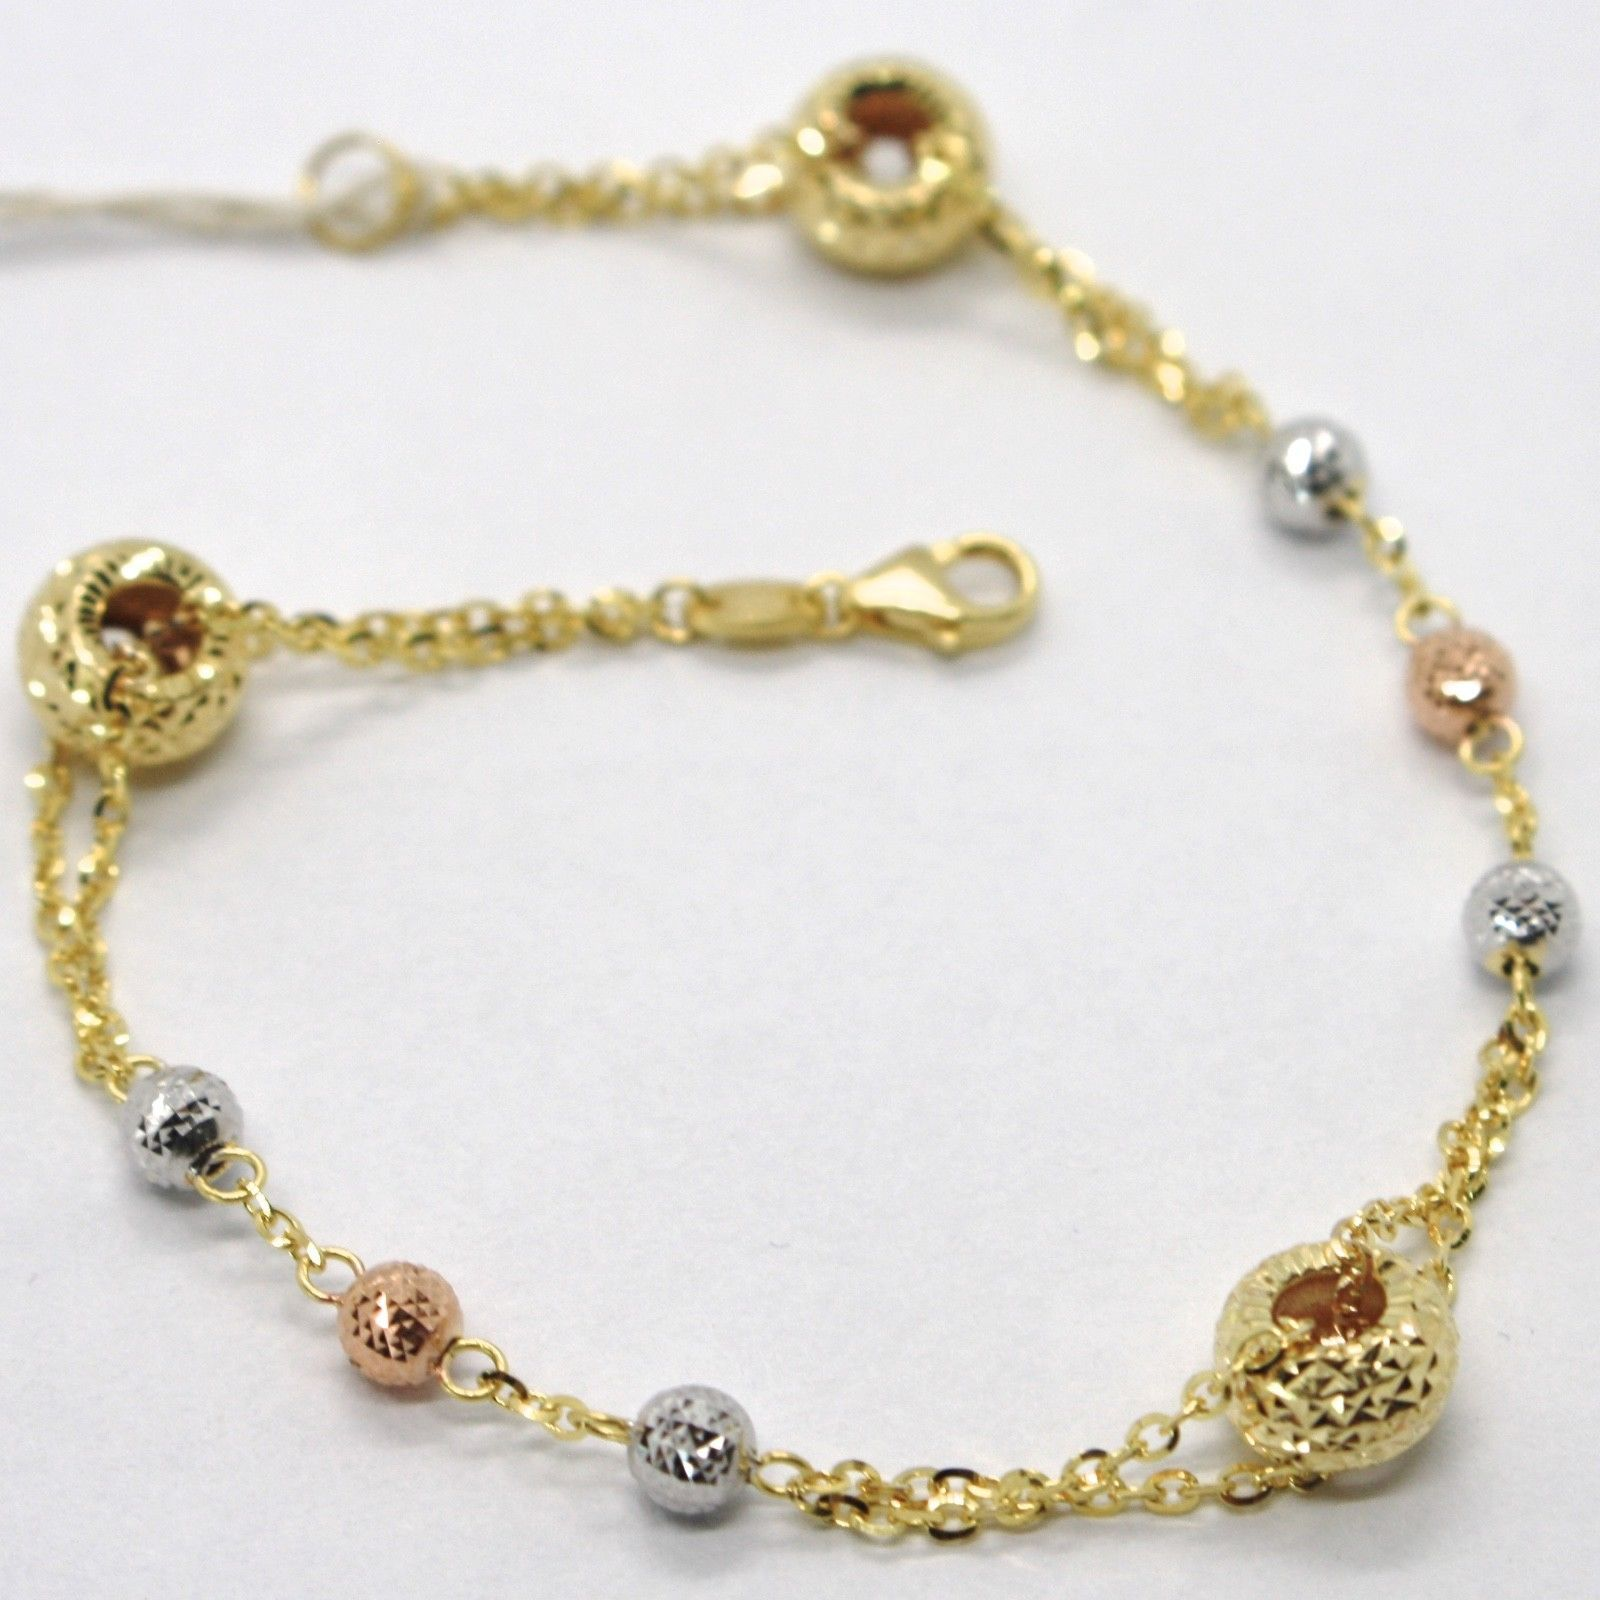 18K YELLOW WHITE ROSE GOLD BRACELET FINELY WORKED CIRCLES, SPHERES & ROLO LINK